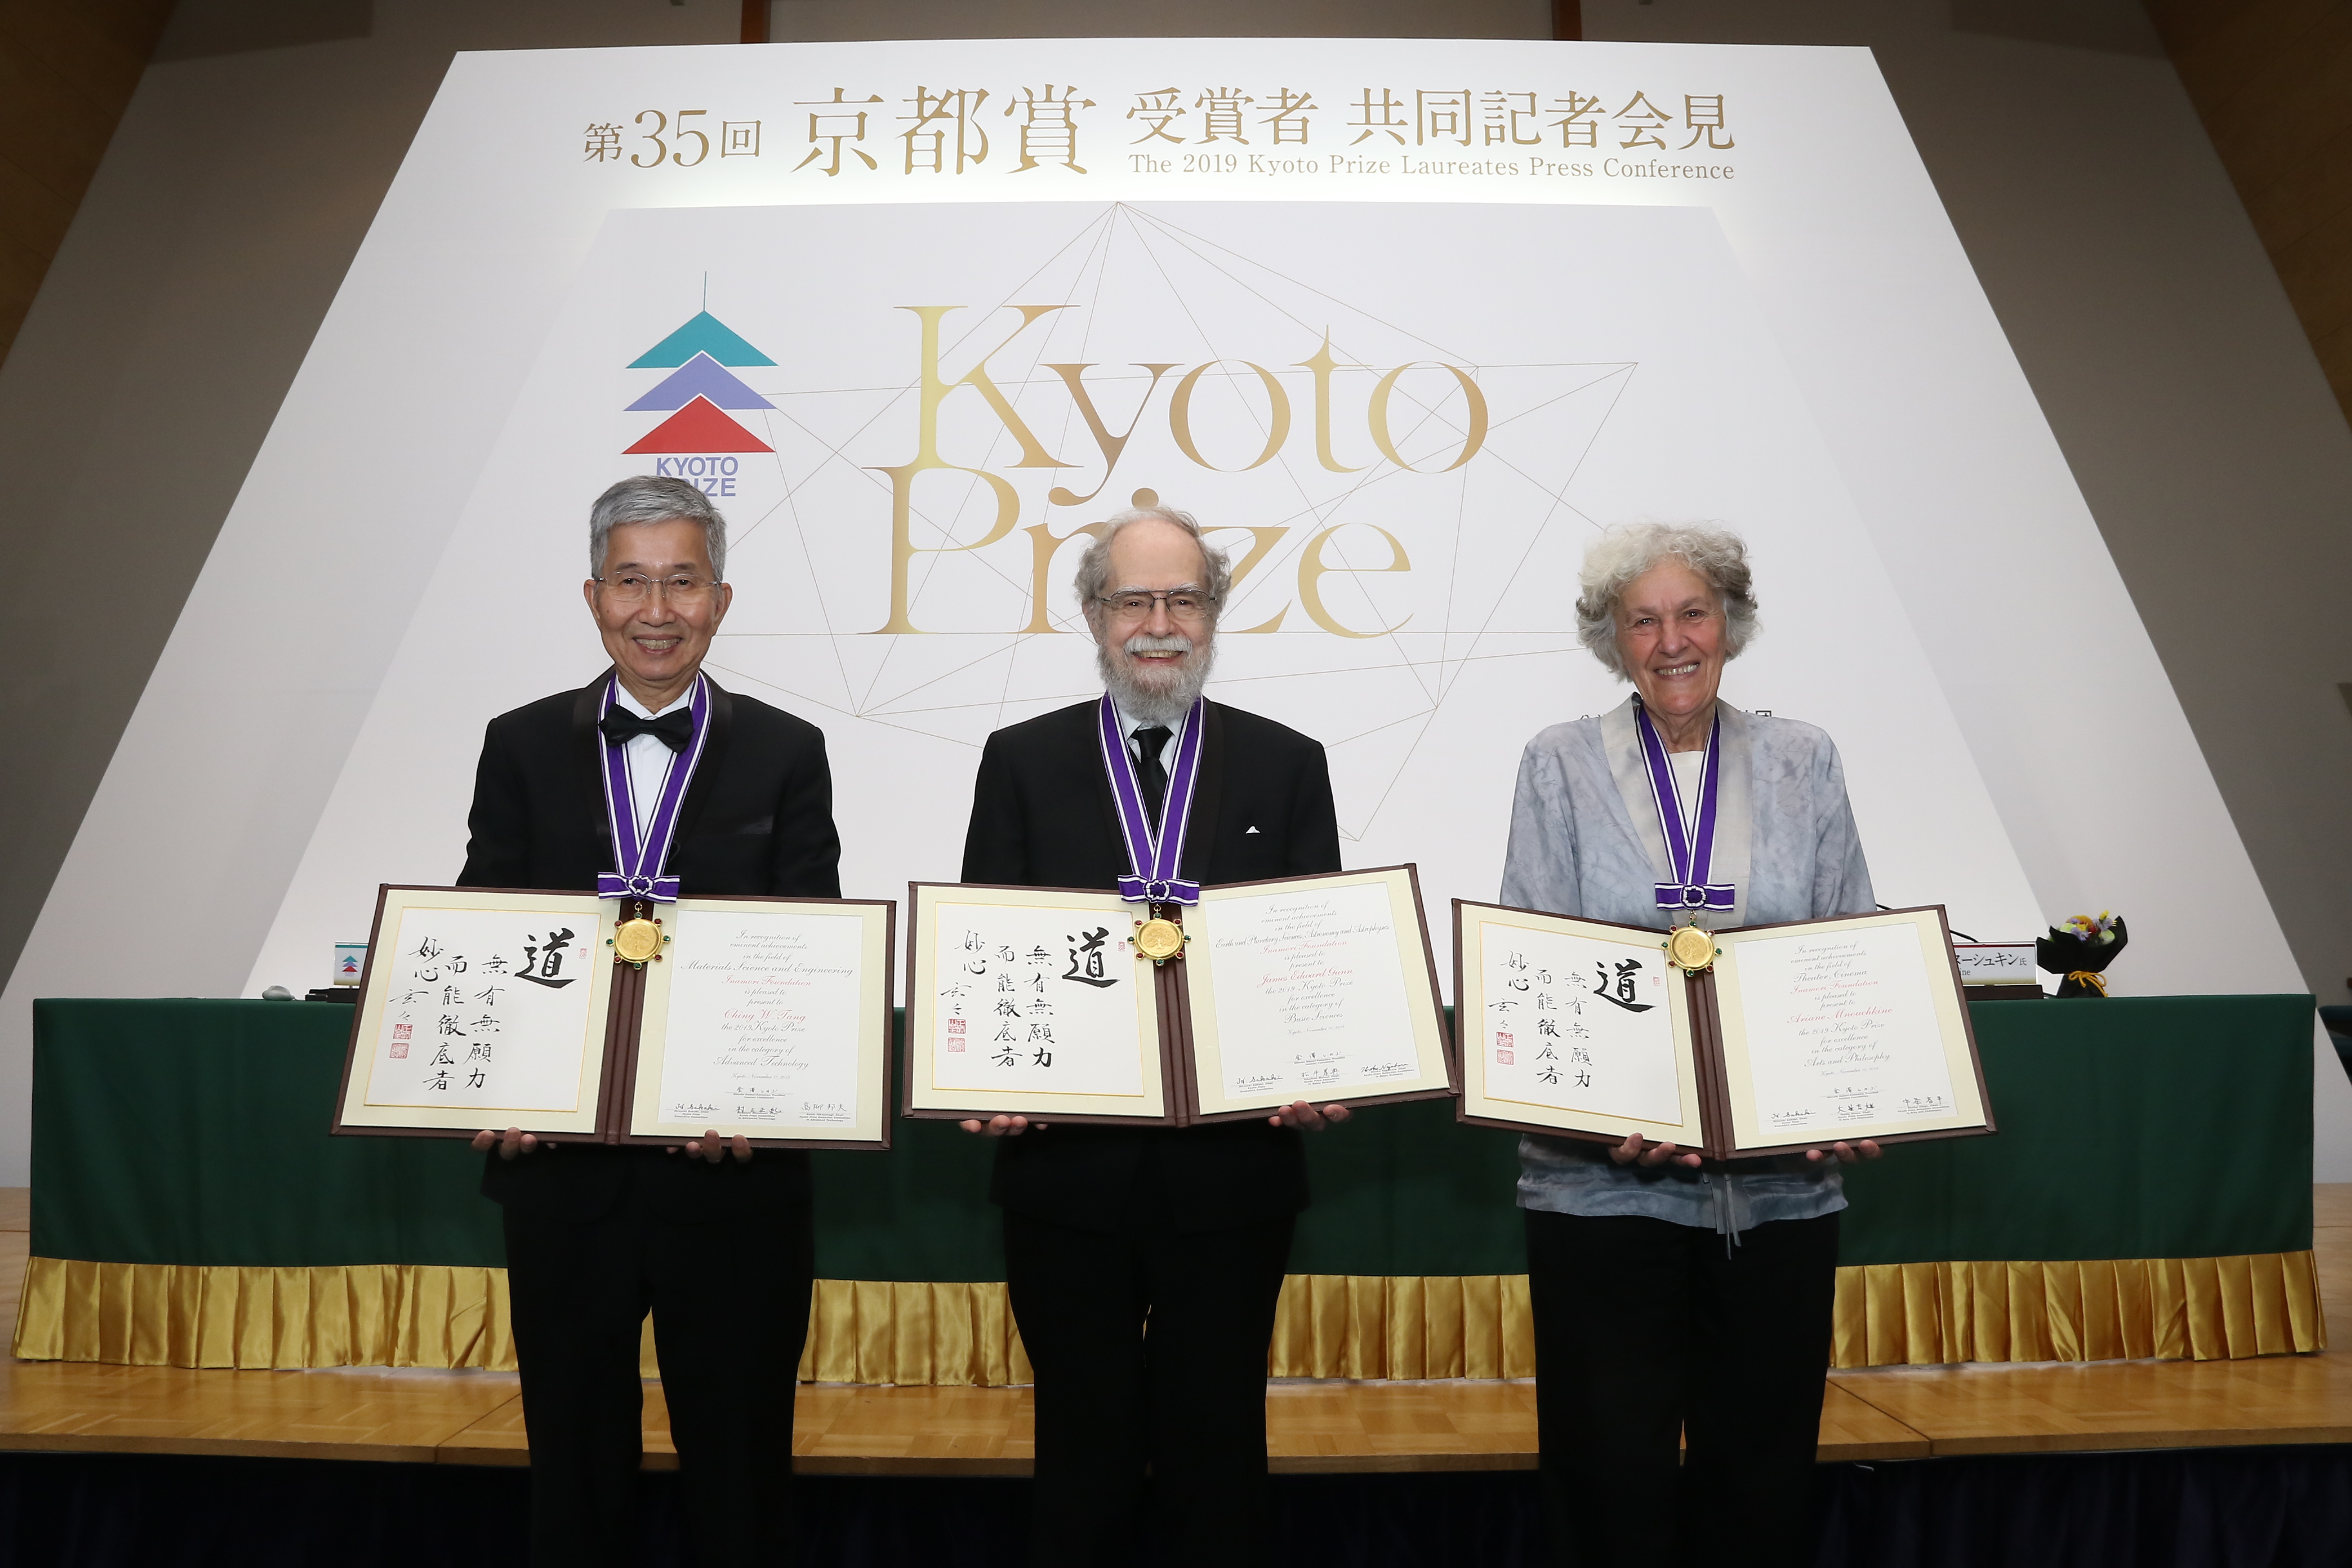 Kyocera_Kyoto Prize_Press conference.JPG